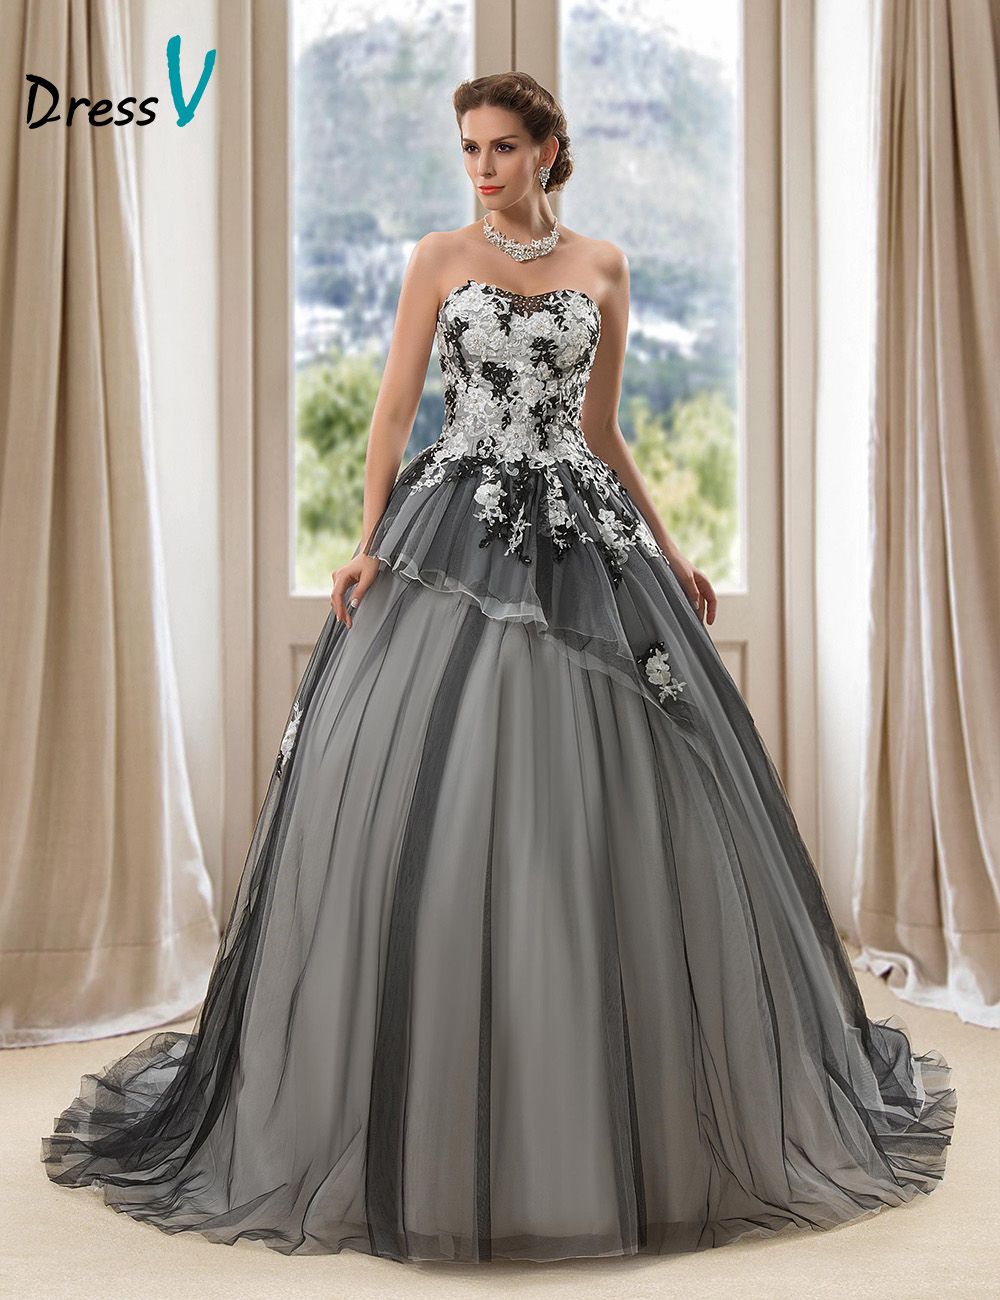 Black Lace Wedding Dresses Ball Gowns – Dresses for Woman